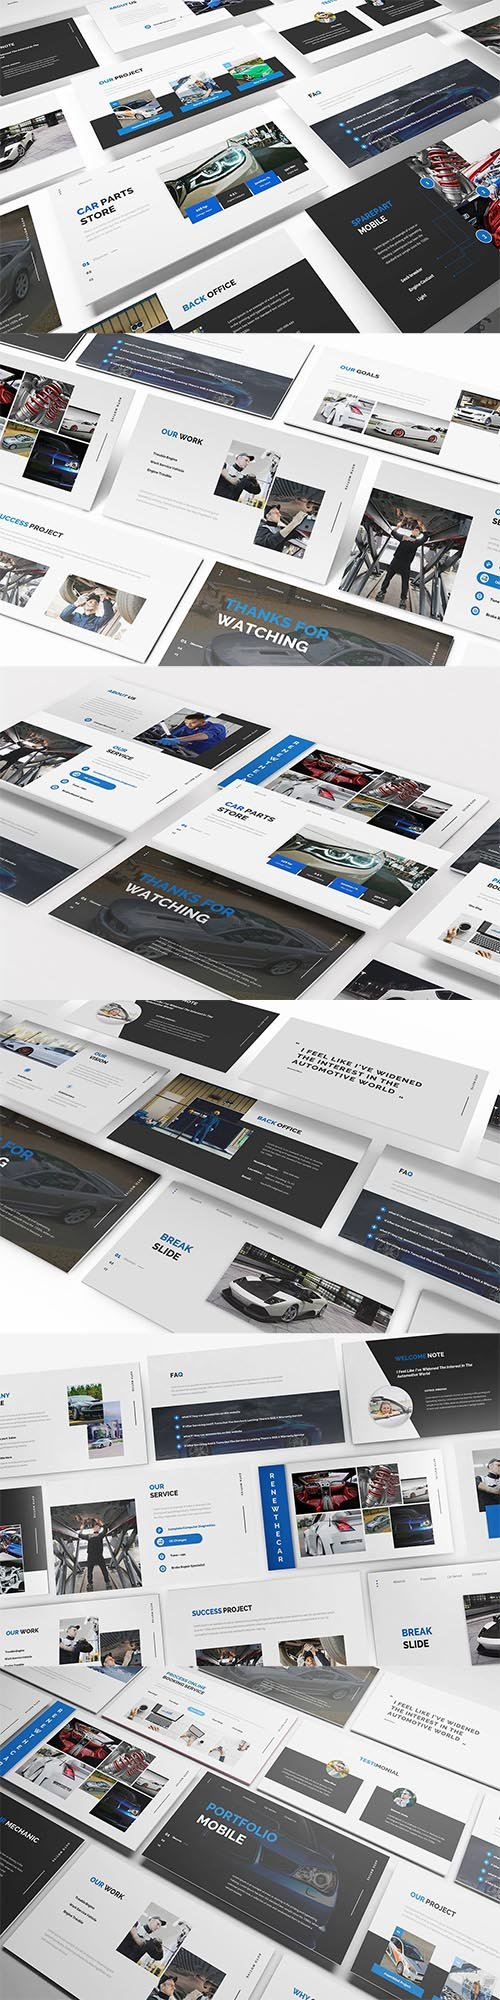 Car Parts Store Powerpoint, Keynote and Google Slide Template